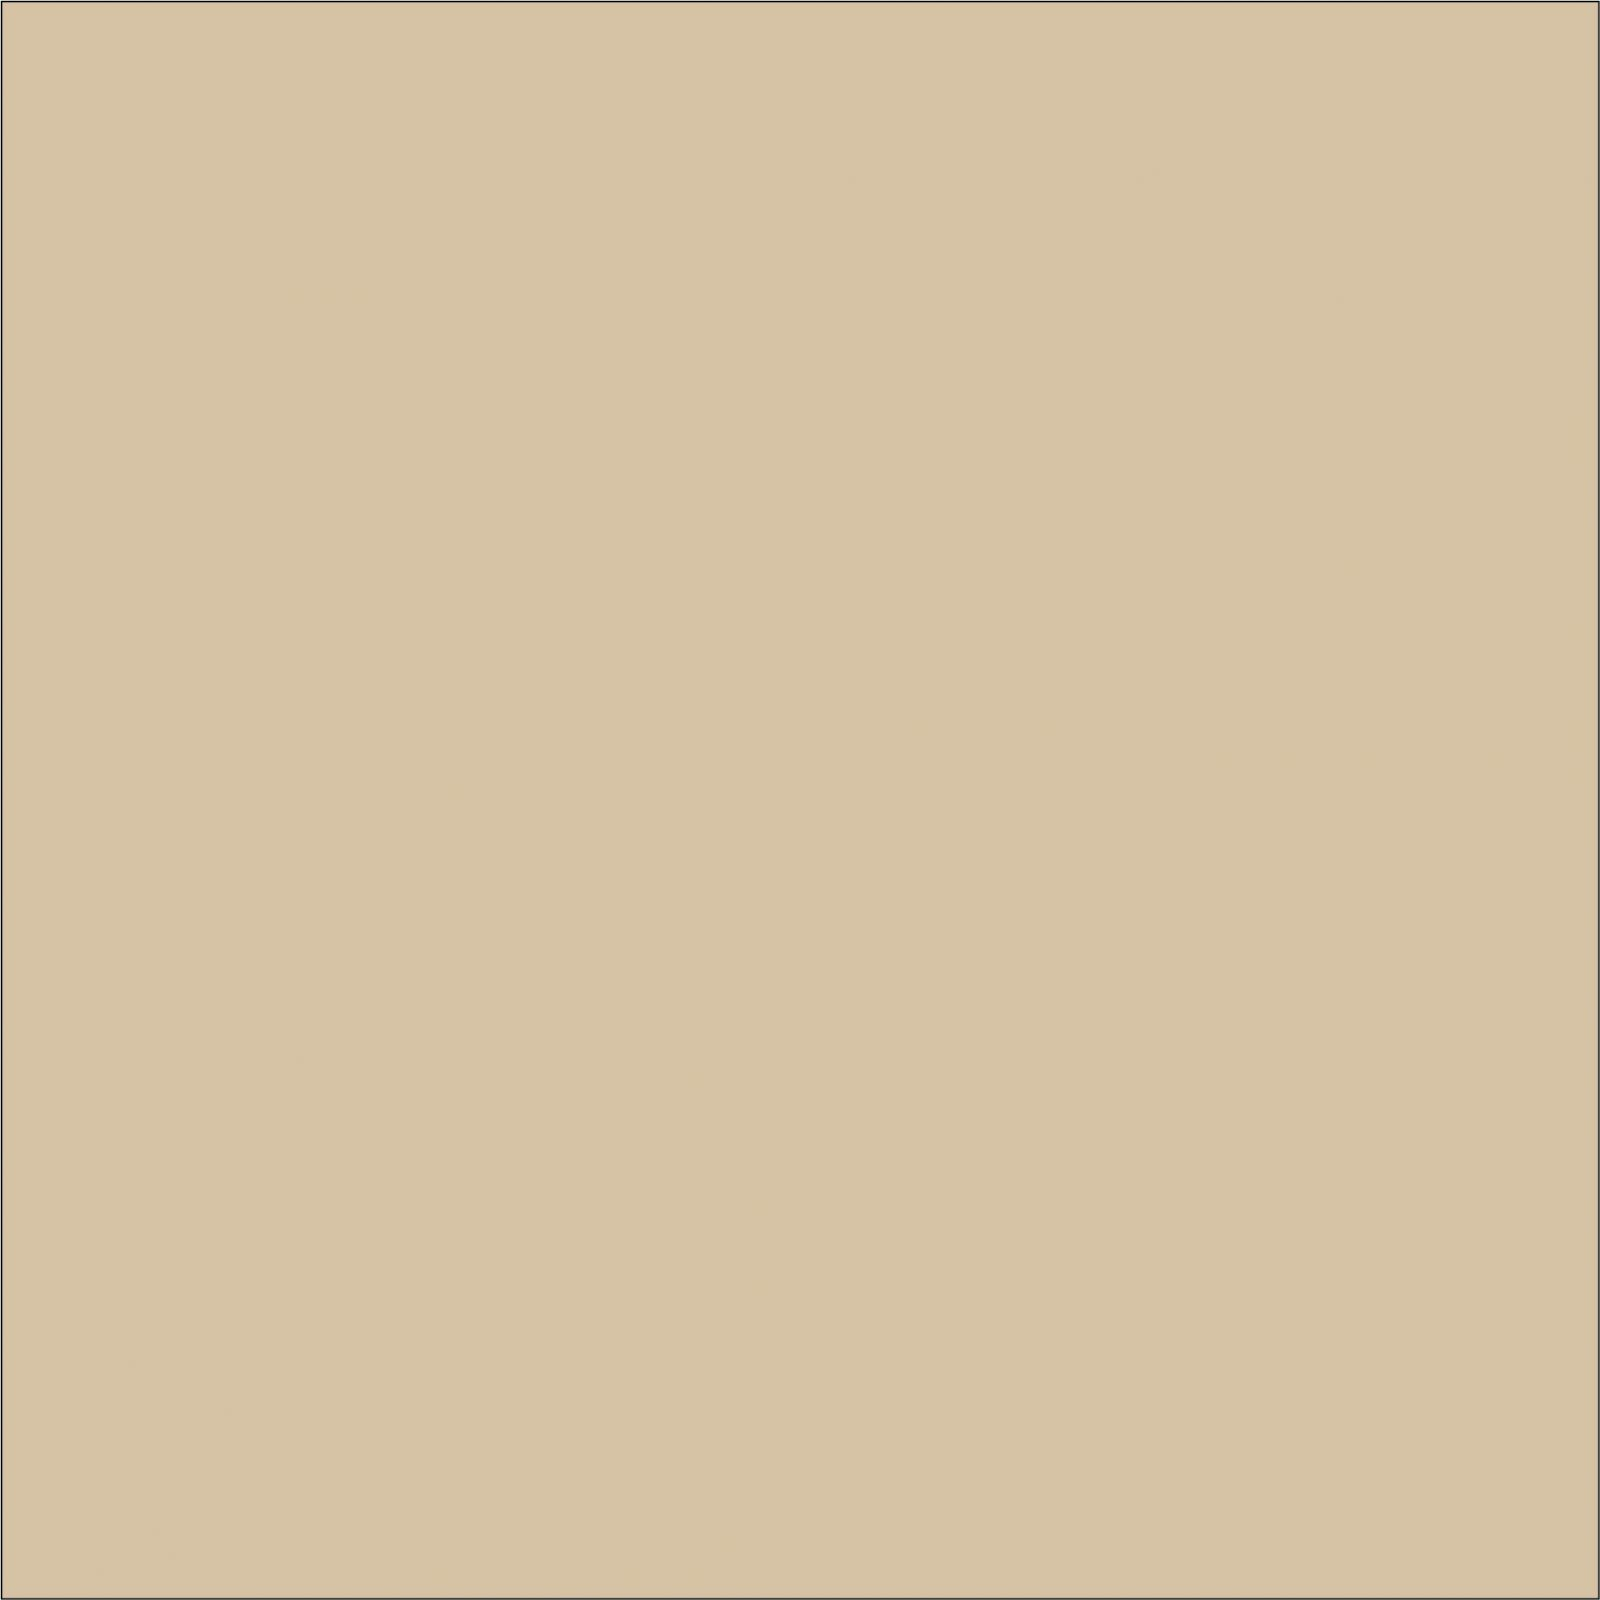 Colour Swatch of Earth Taupe